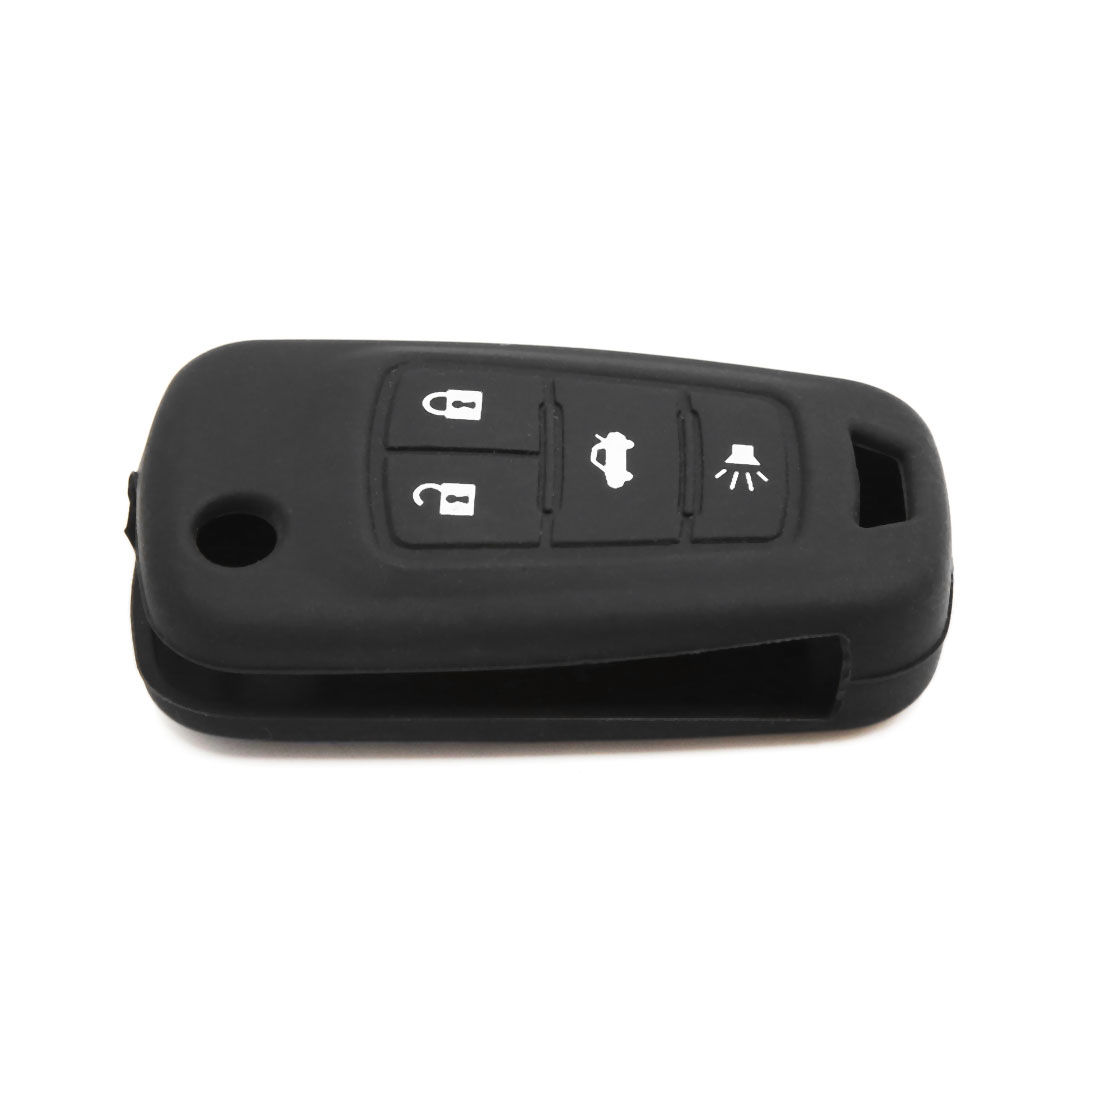 3 Button Rubber Car Remote Key Cover Case Protective Black for Buick Regal - image 2 de 4